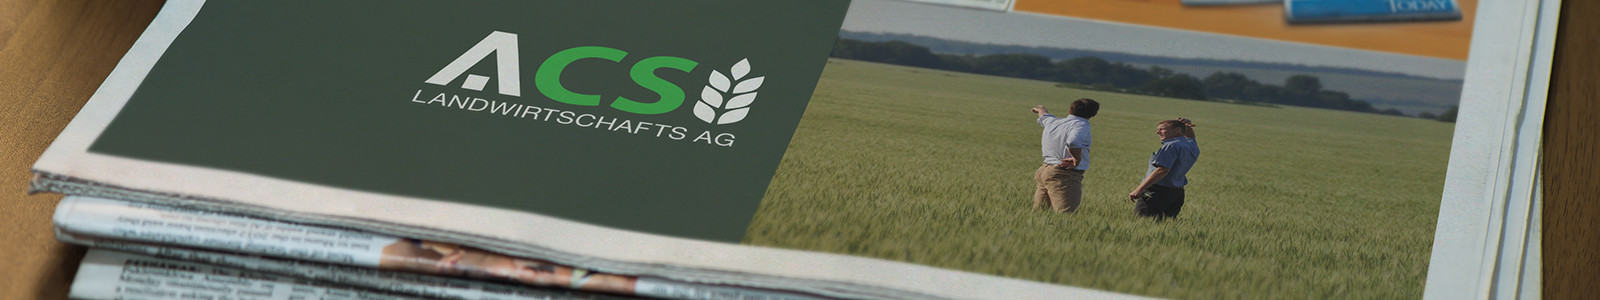 Press material about ACS Landwirtschafts AG